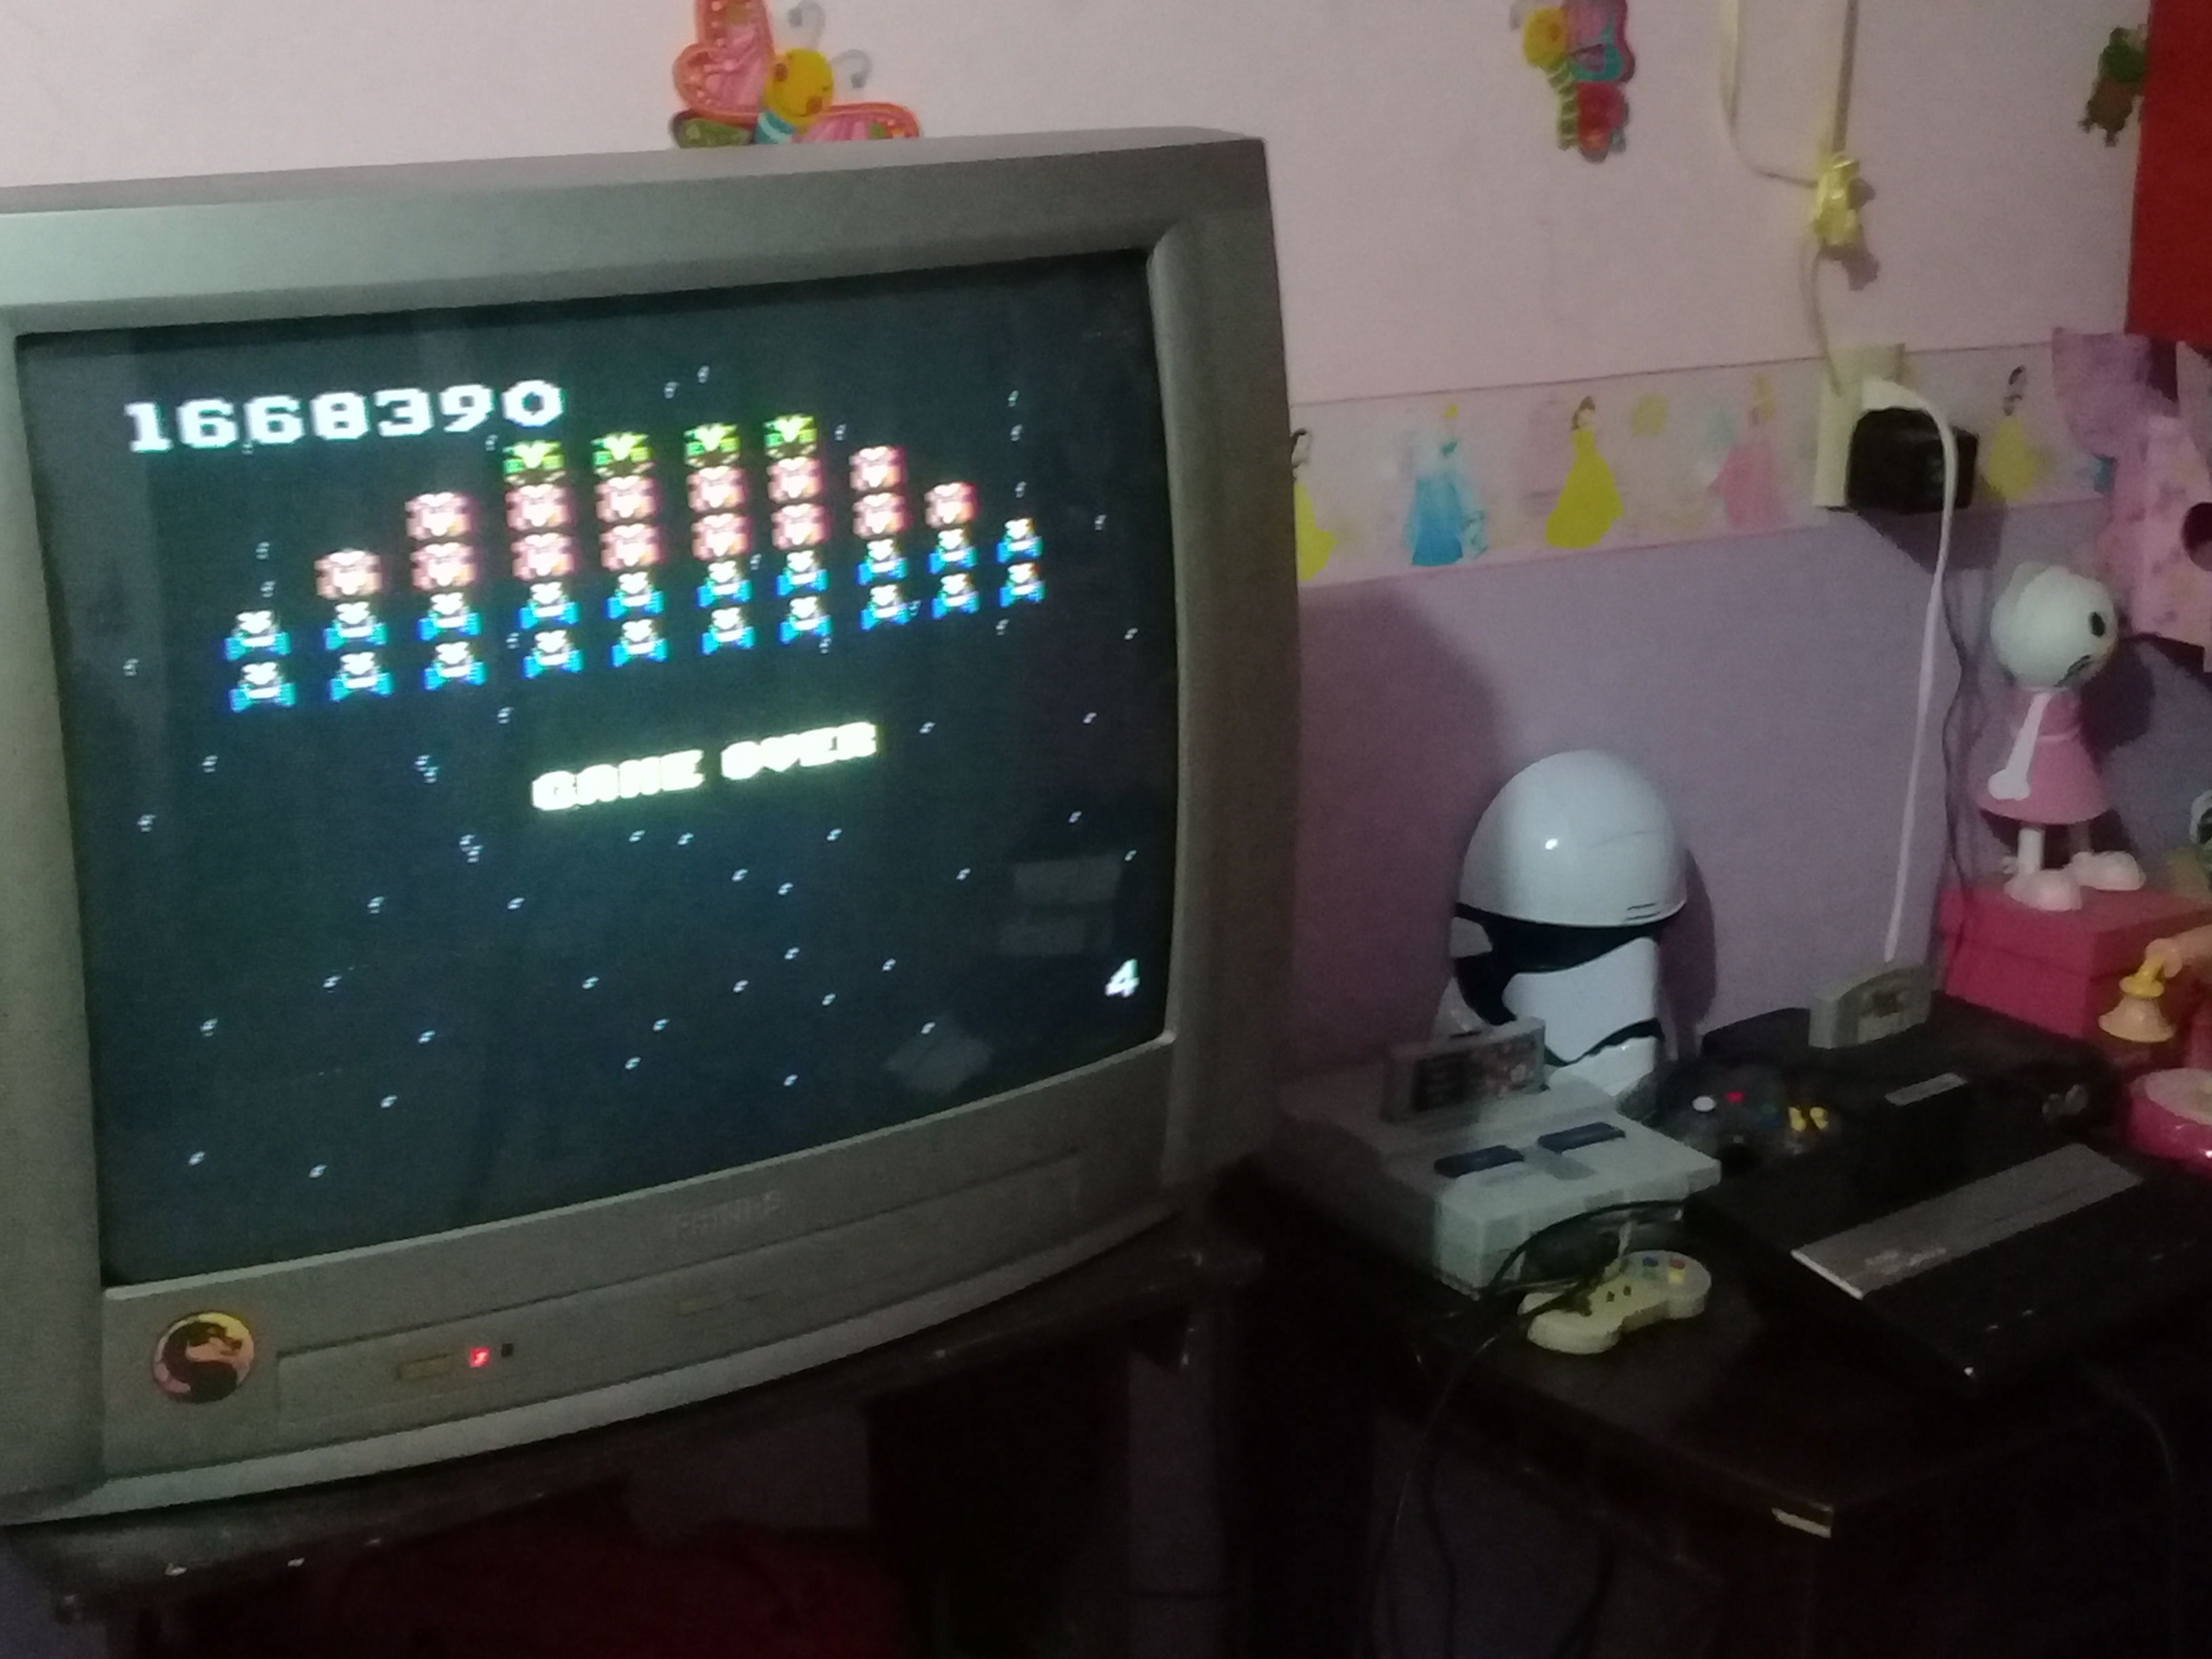 omargeddon: Galaga: Novice (Atari 7800) 1,668,390 points on 2020-09-20 03:16:56